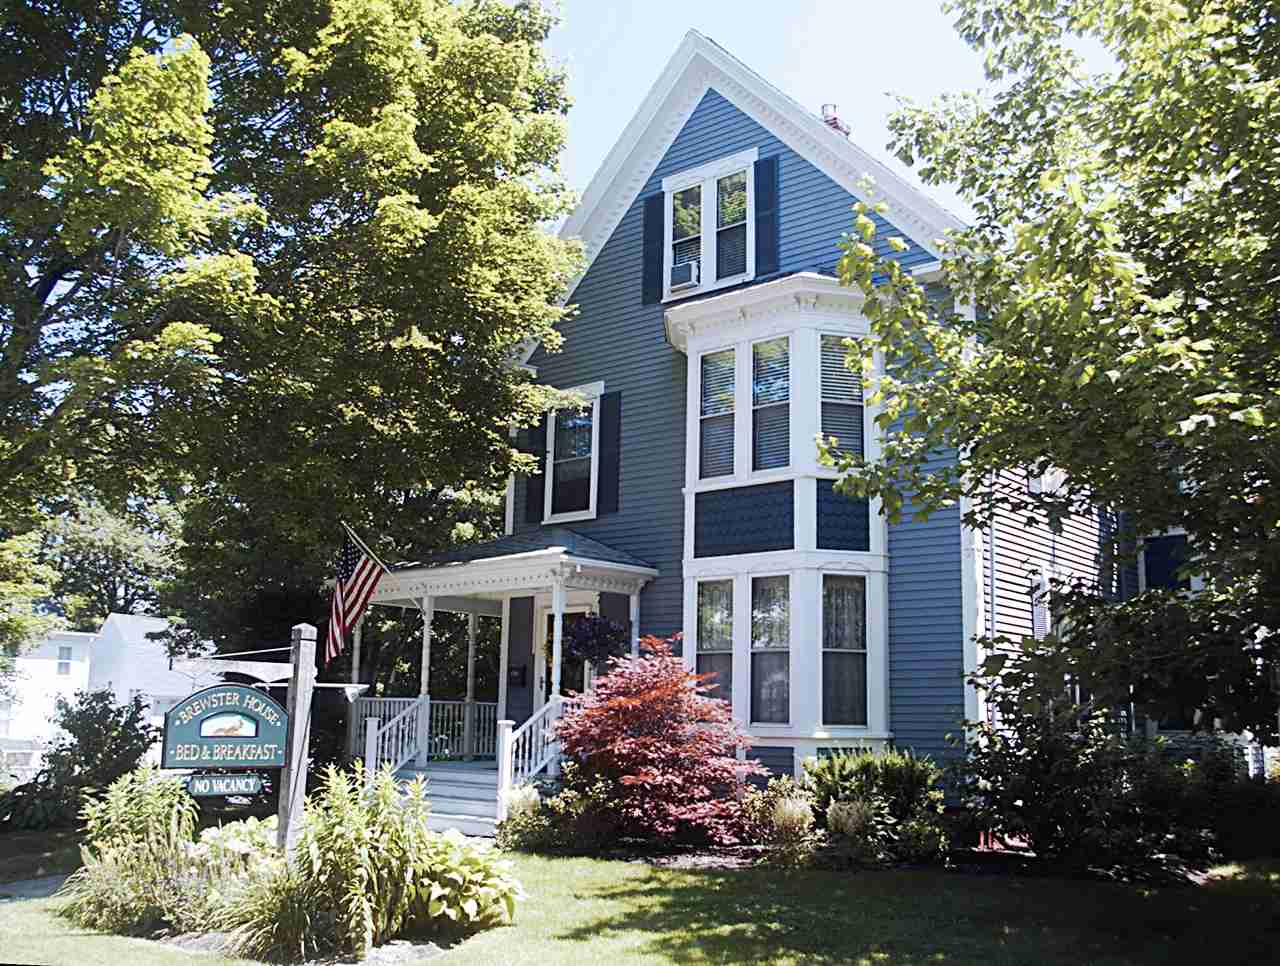 Brewster House Bed & Breakfast, Freeport, Maine. (Photo courtesy of Brewster House Bed & Breakfast)